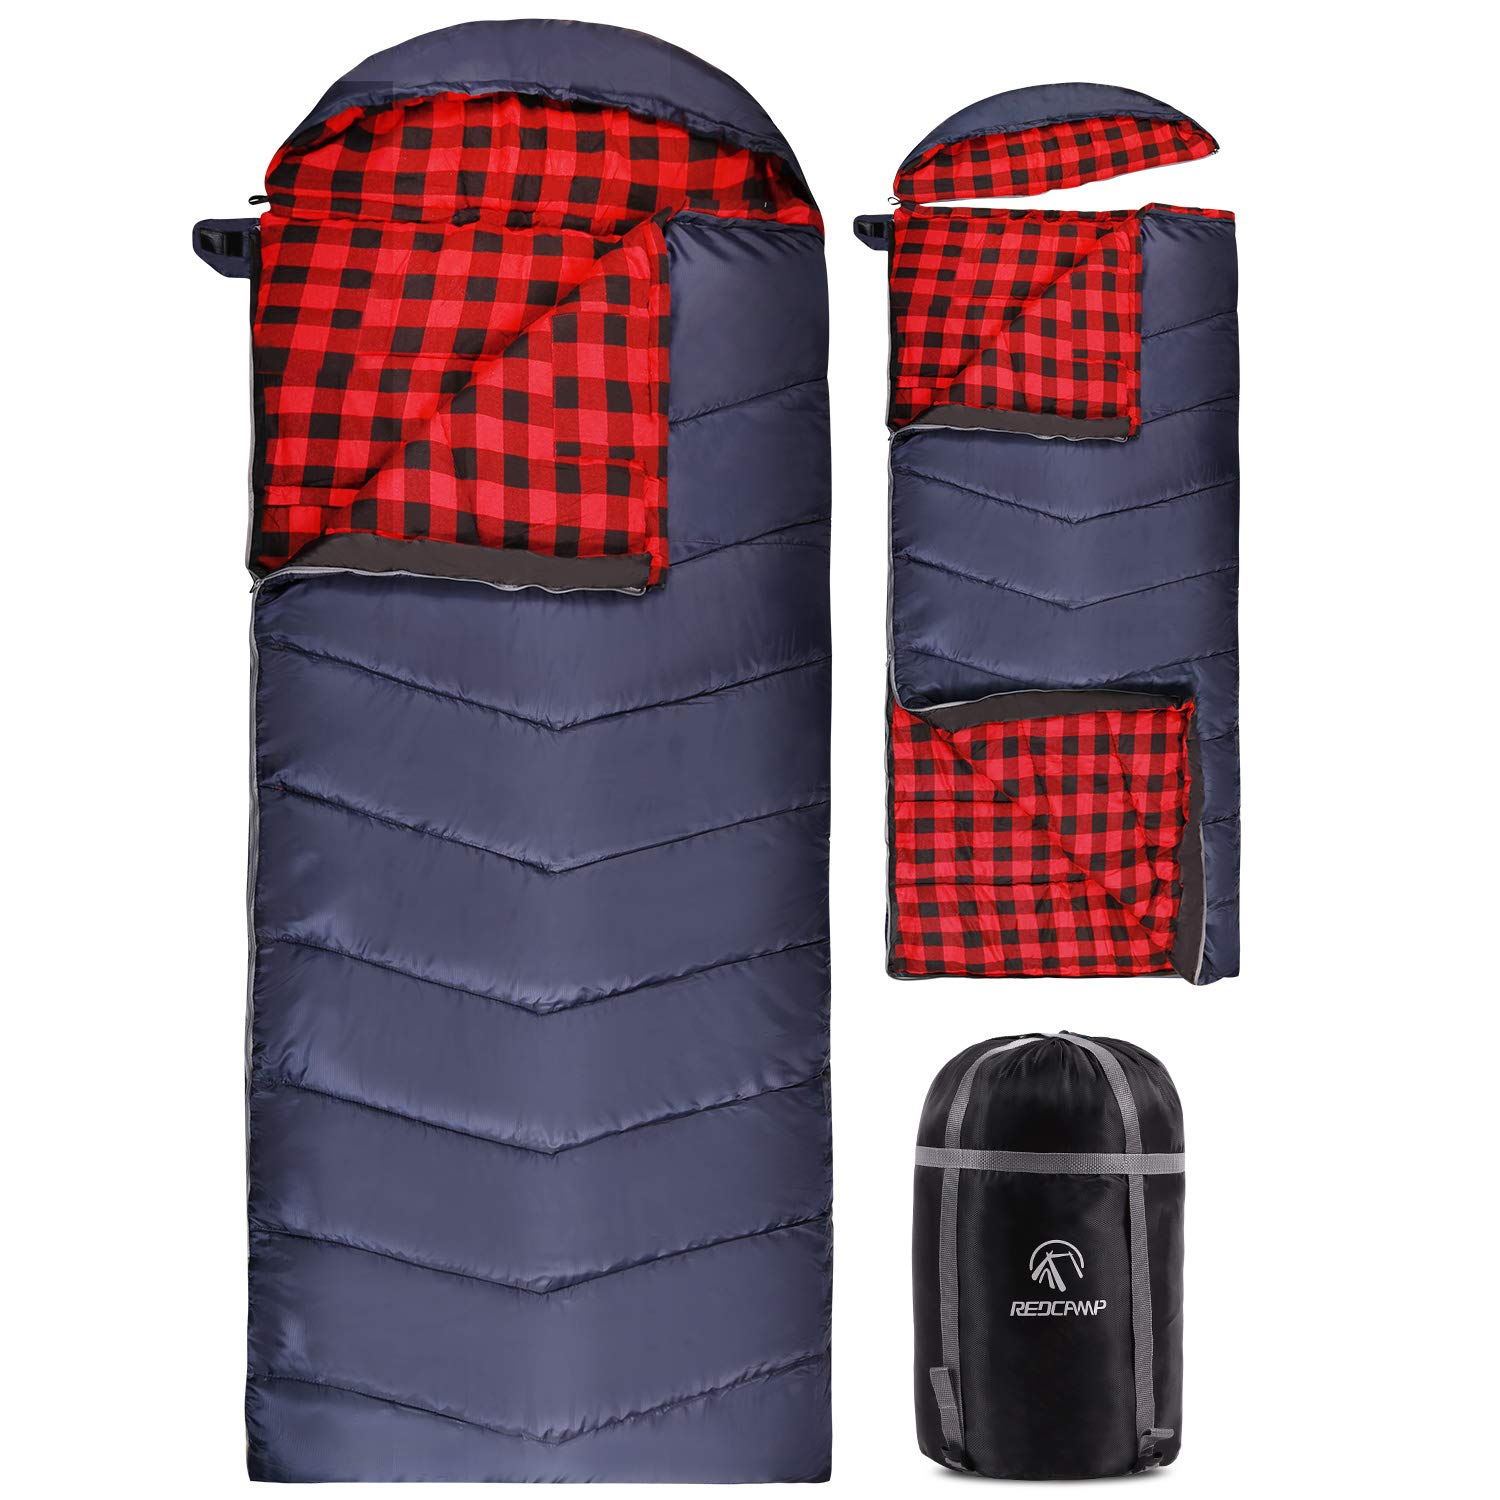 REDCAMP Flannel Sleeping Bag for Adults, Large Cotton Sleeping Bags for Camping with Detachable Hood, Red Plaid with 3lbs Filling (91''x33'') by REDCAMP